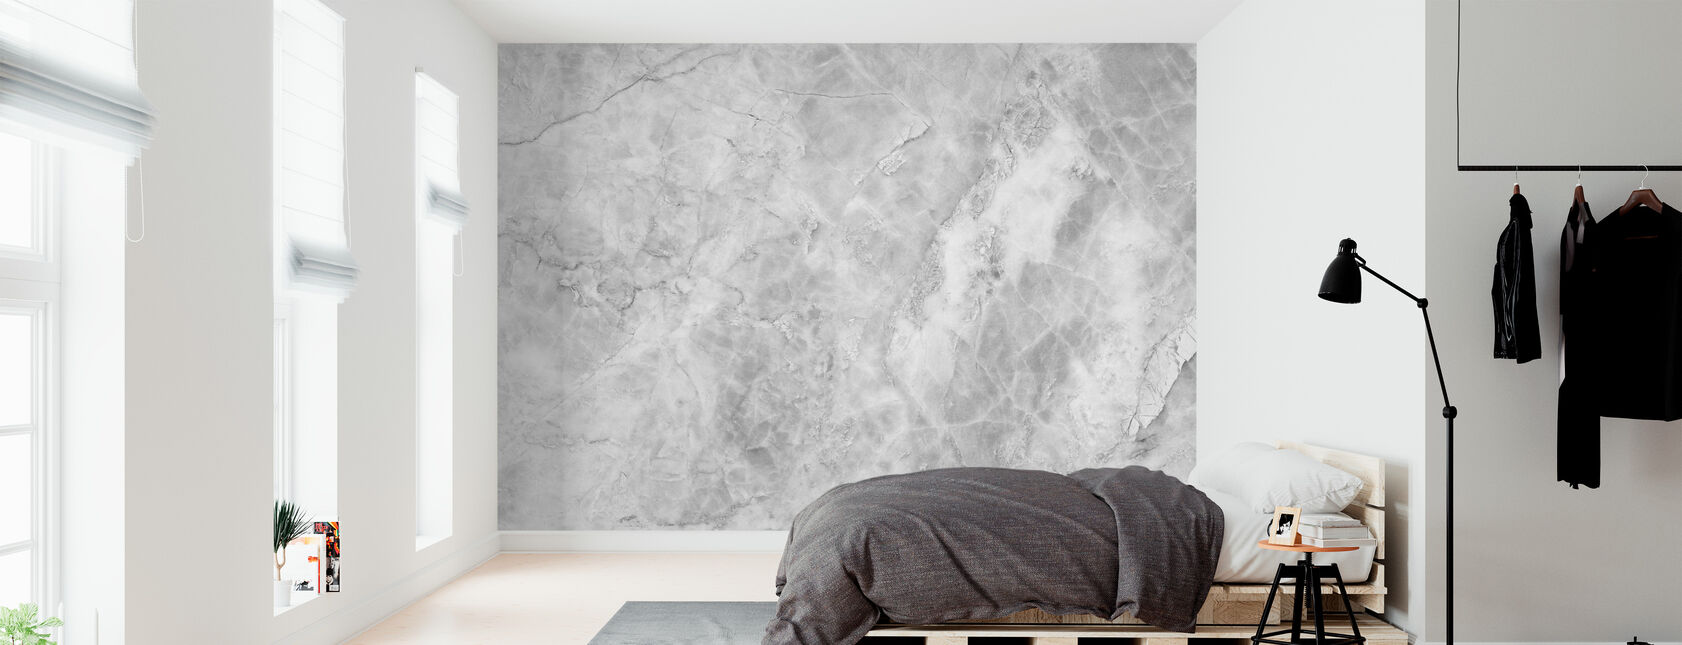 White Marble Background - Wallpaper - Bedroom